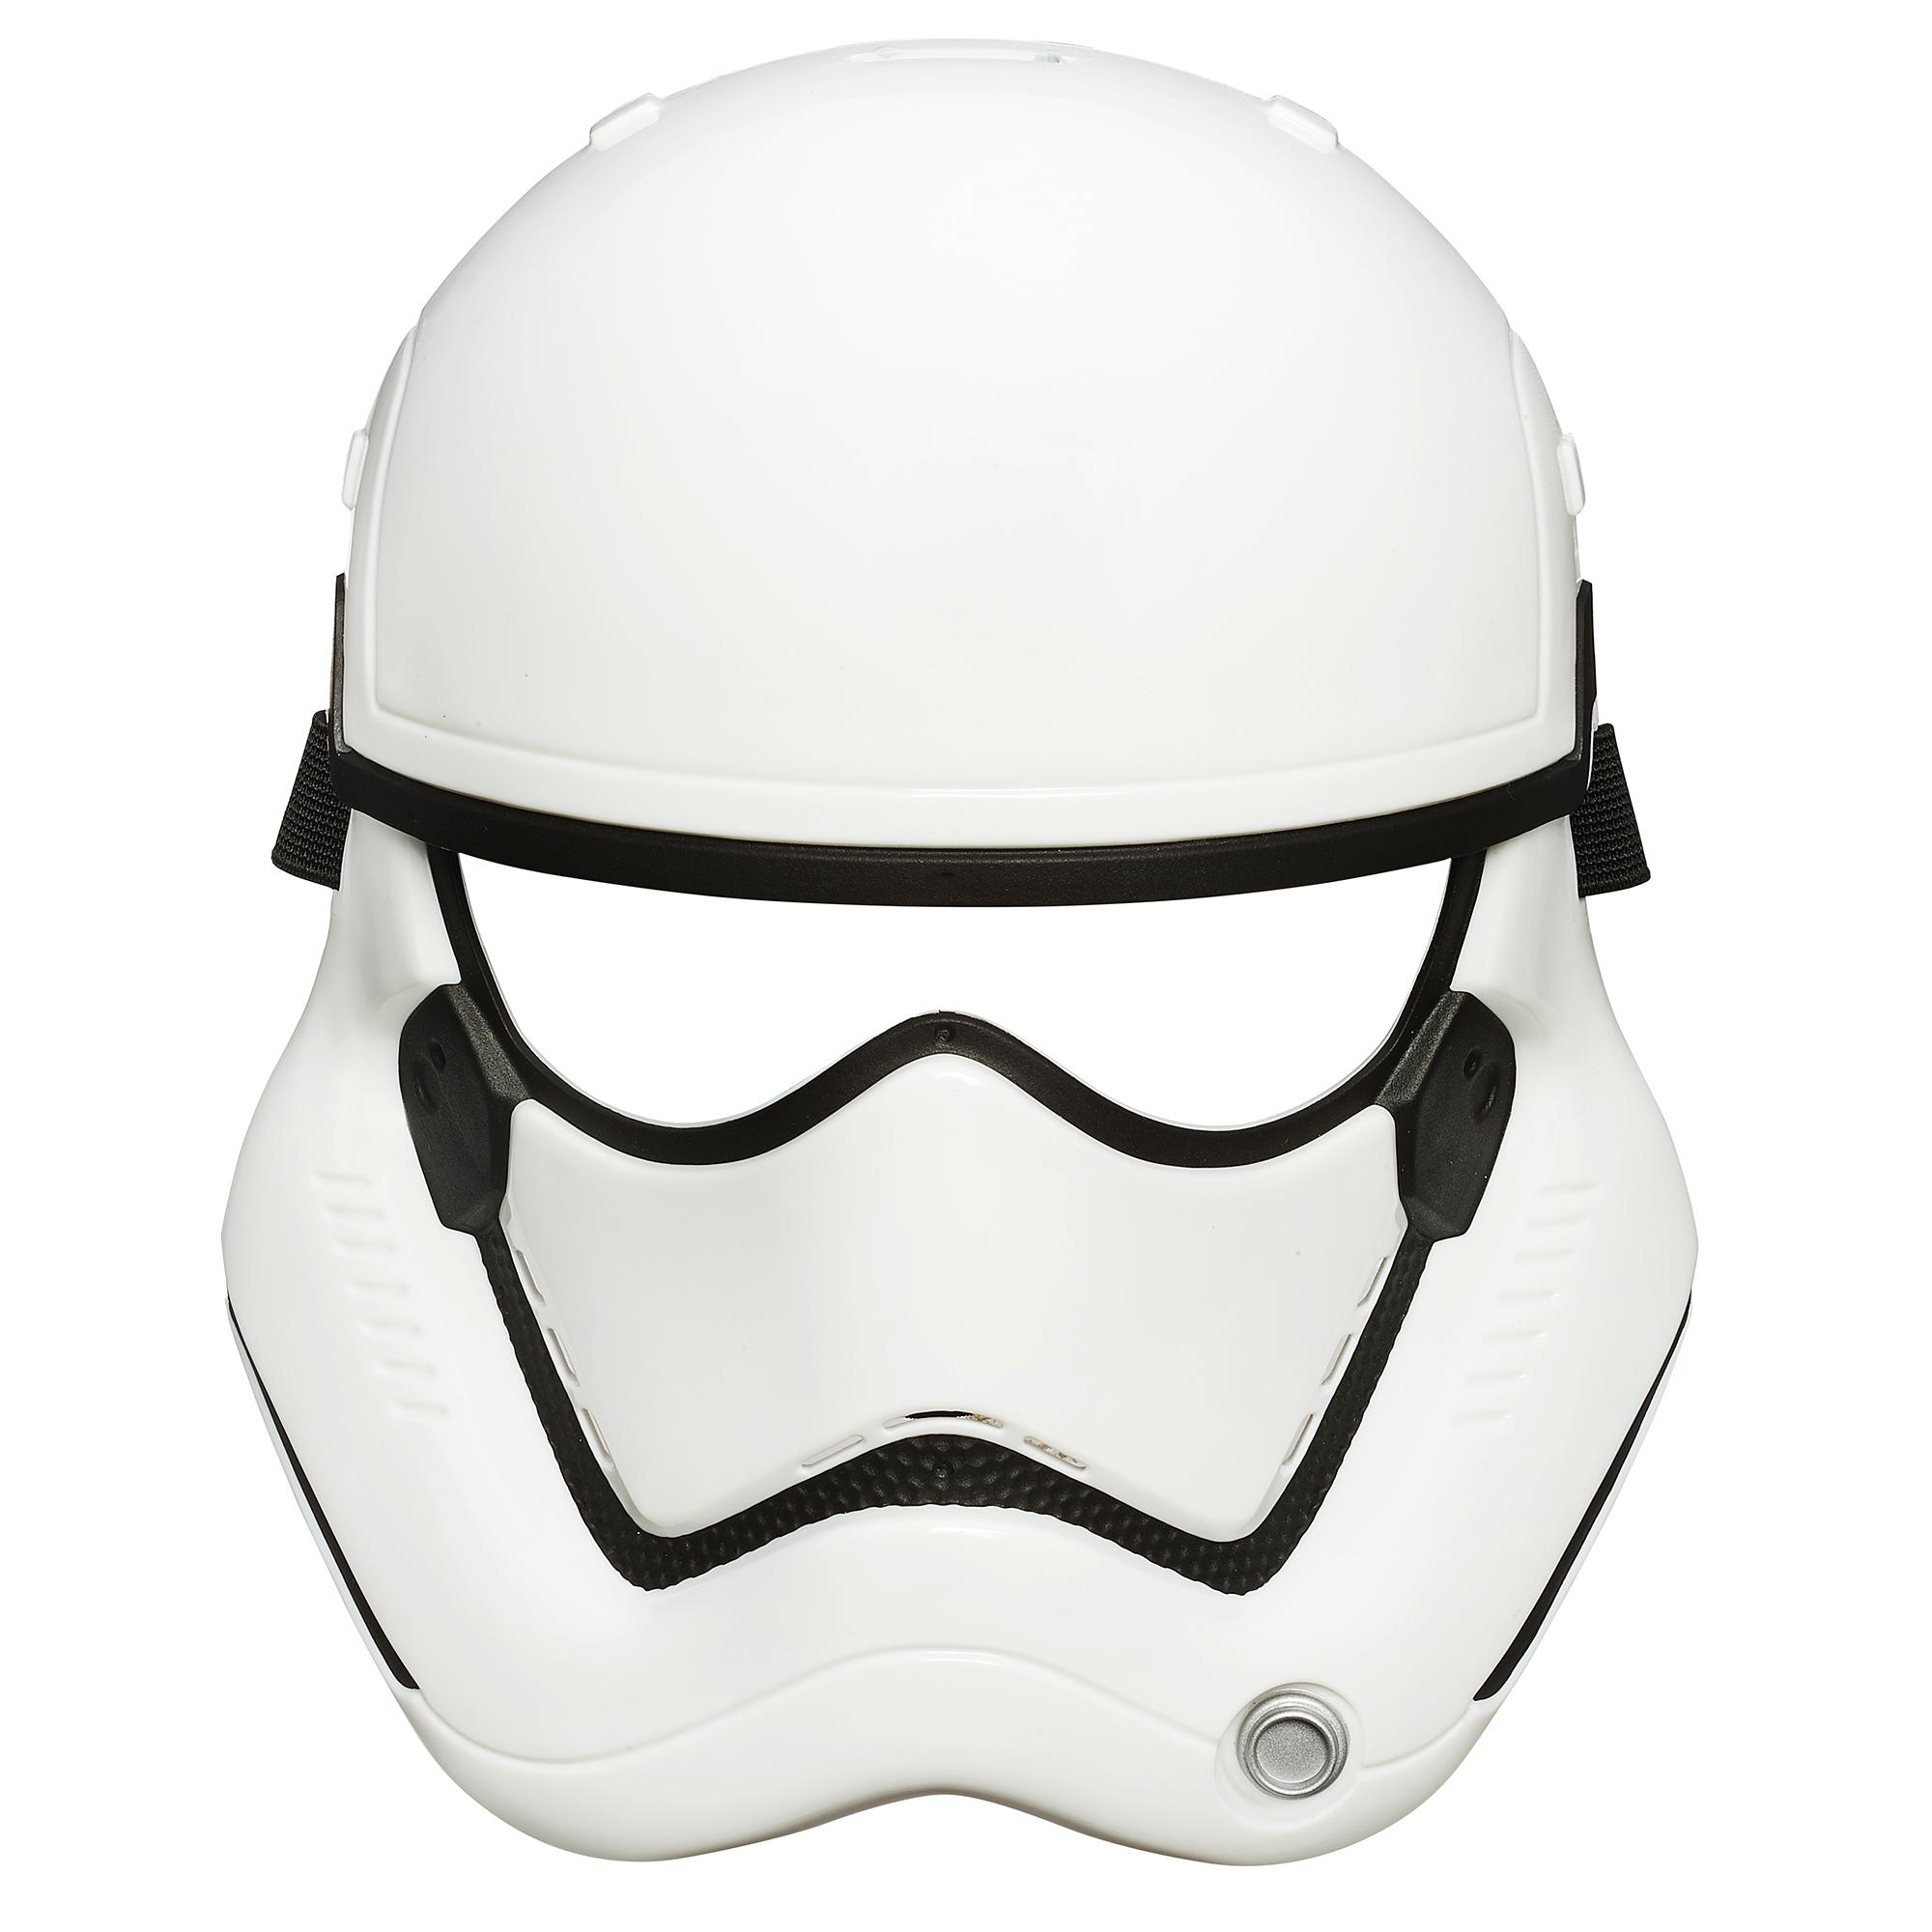 Star Wars The Force Awakens Máscara de Stormtrooper de la Primera Orden